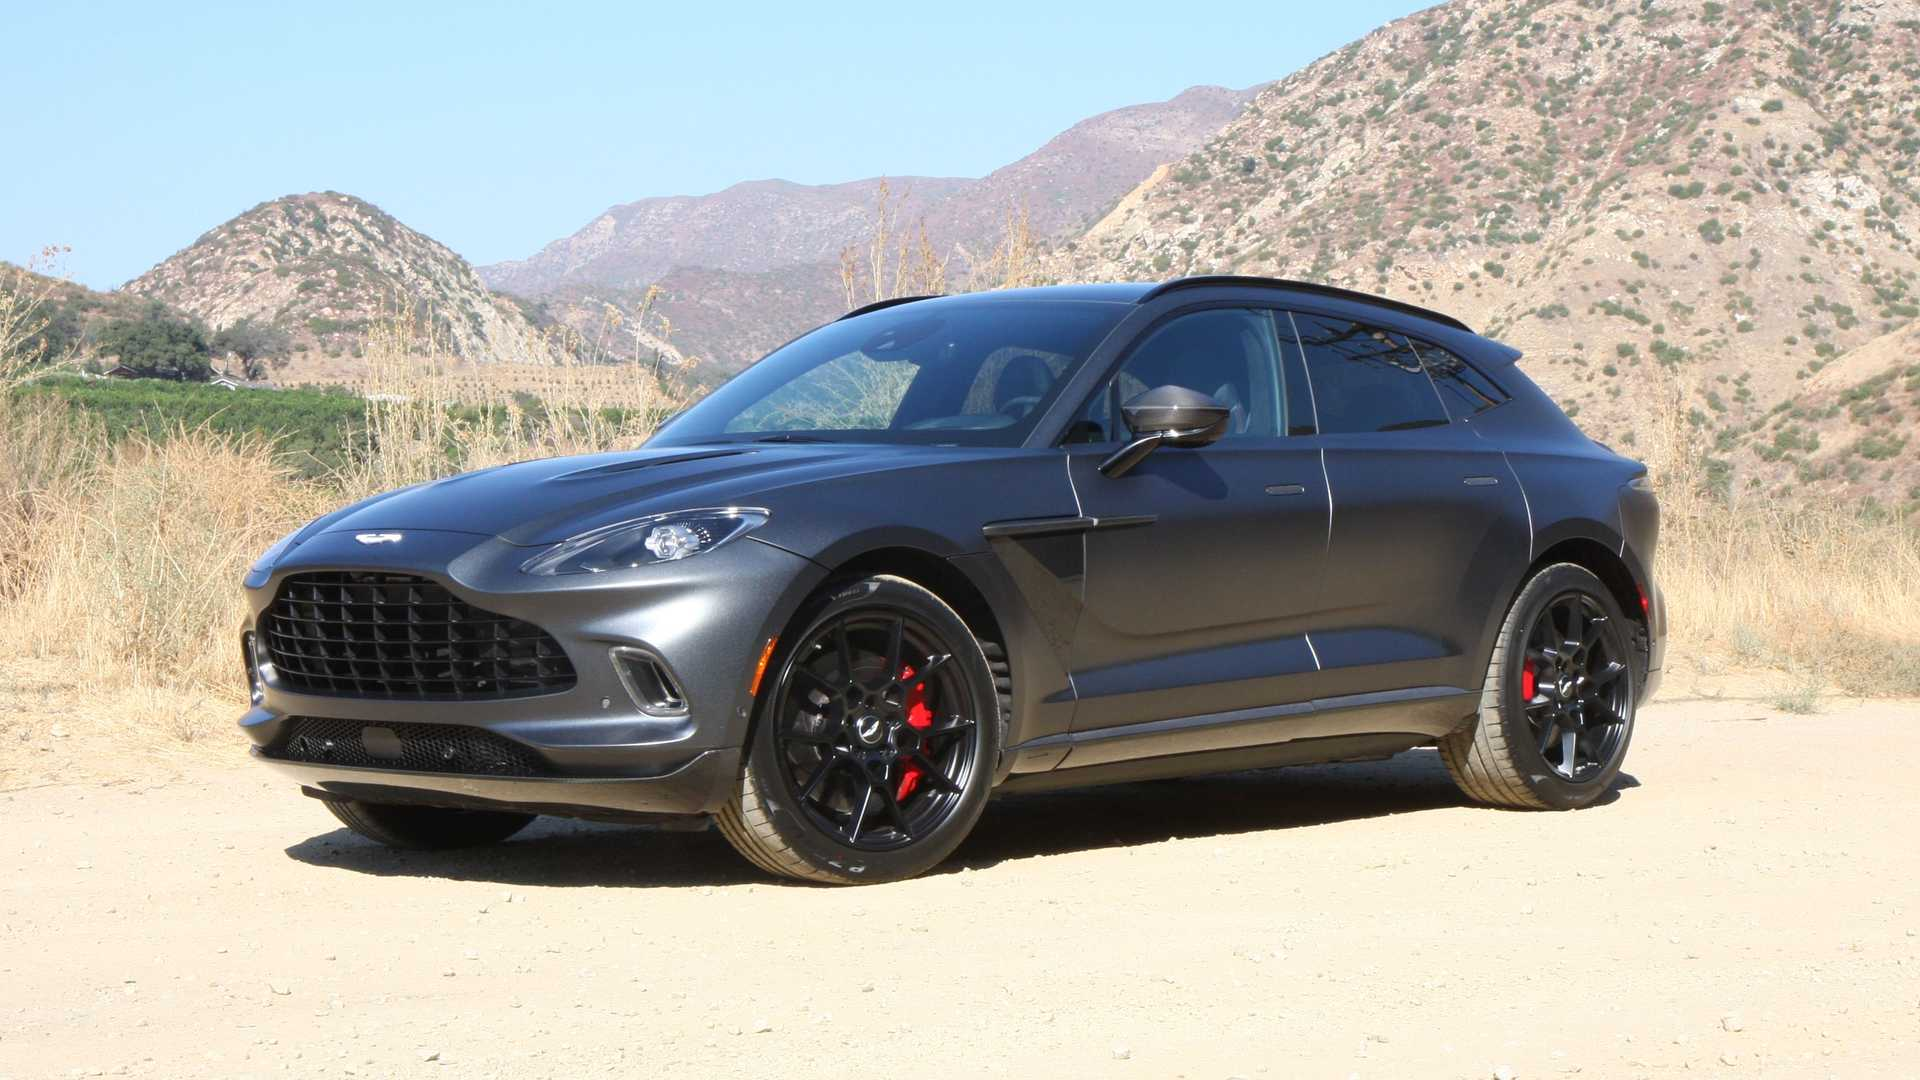 Aston Martin's first SUV in history – only ships with a V8 in the United States so far, but the carmaker will be unveiling a different take on it later this year.